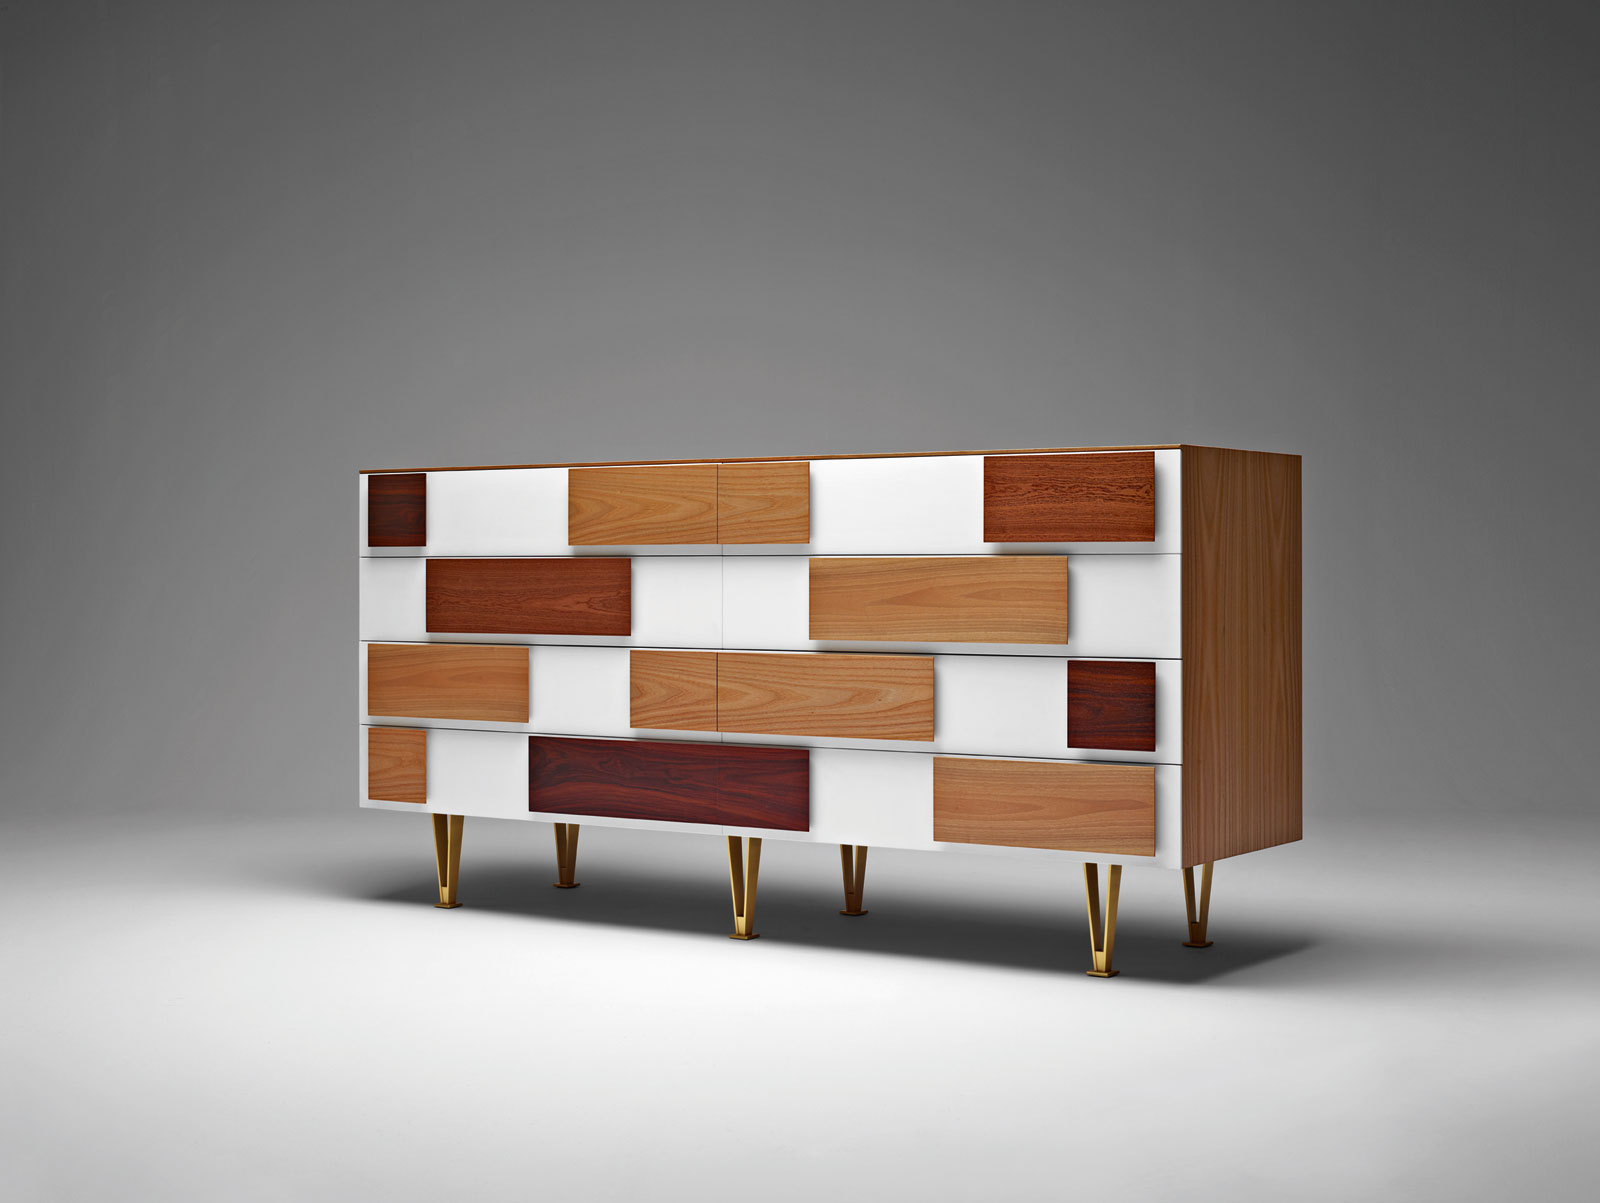 The Most Exquisite Italian Craftsmanship - Gio Ponti - Molteni&C craftsmanship Craftsmanship: The Most Exquisite Italian Arts and Crafts The Most Exquisite Italian Craftsmanship Gio Ponti MolteniC